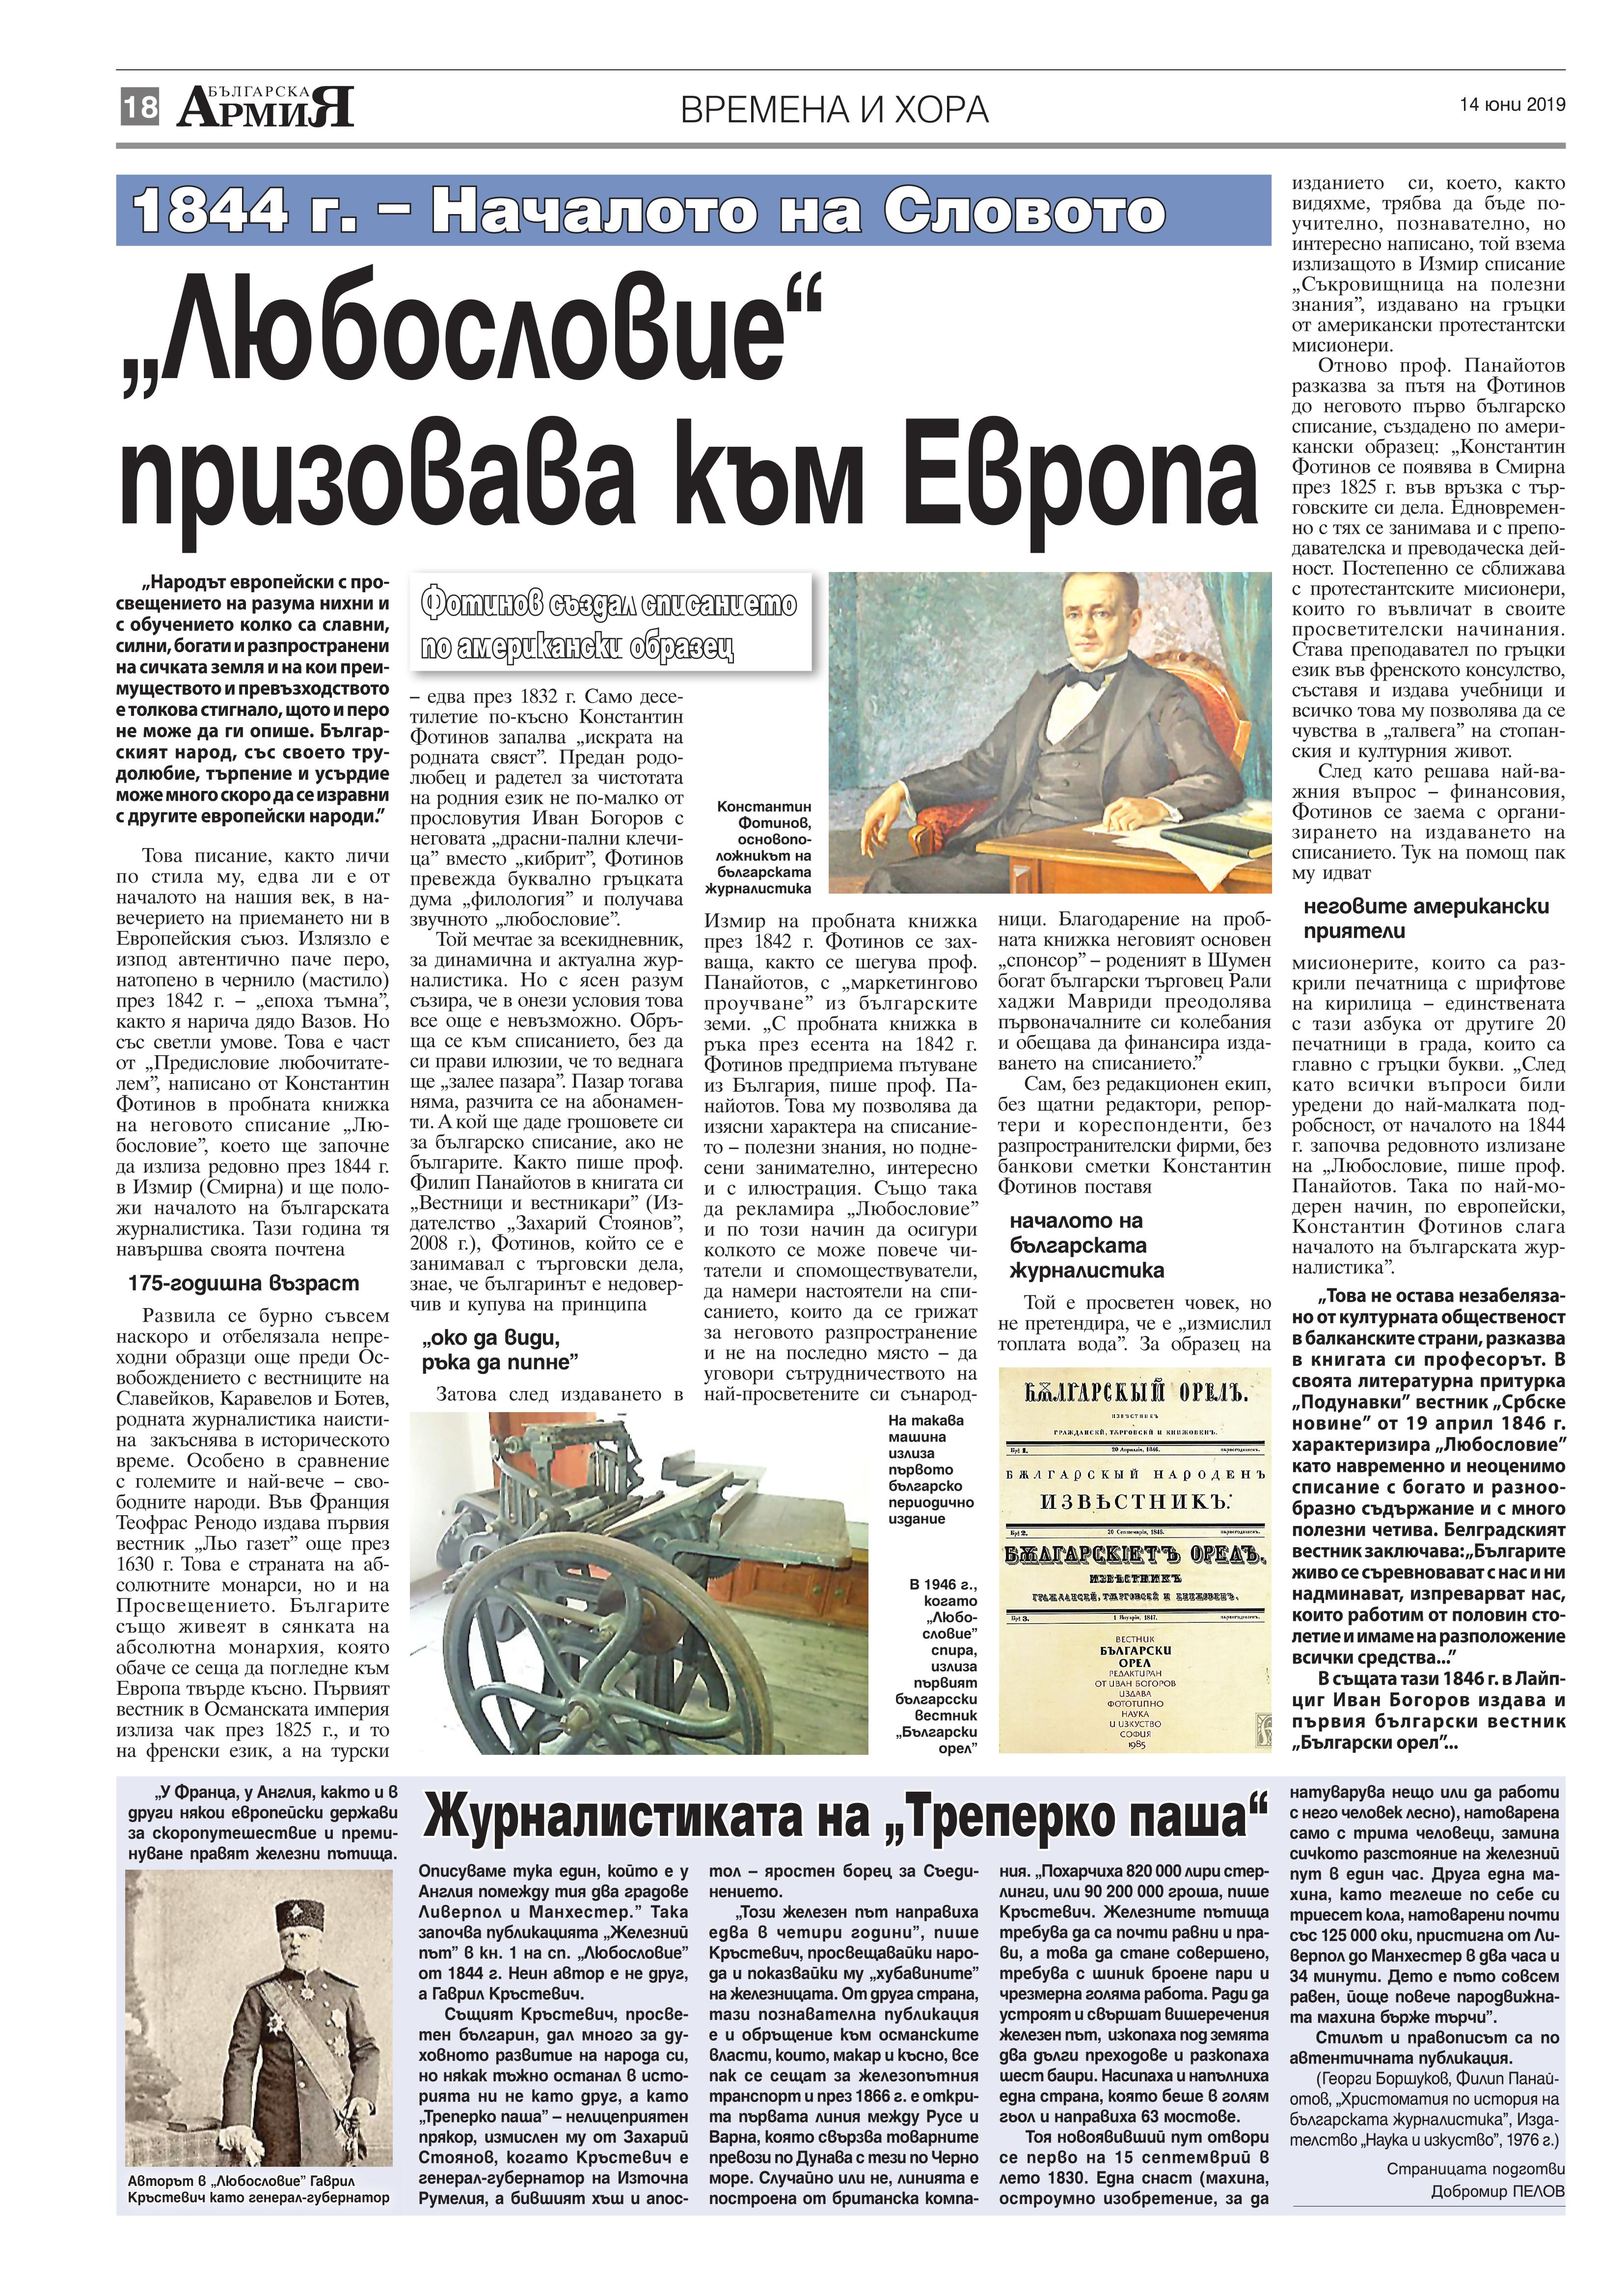 https://armymedia.bg/wp-content/uploads/2015/06/18.page1_-99.jpg